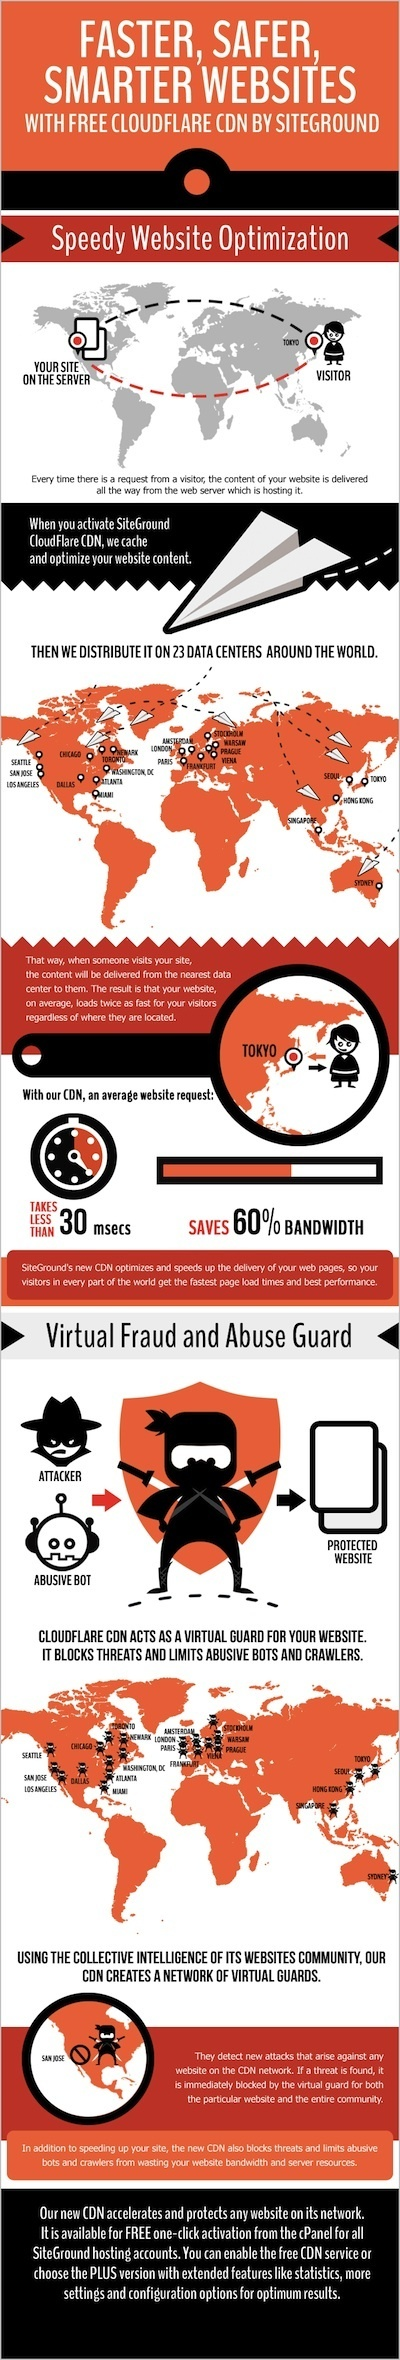 How cool is SiteGround's Free CloudFlare CDN - infographic | Transformations in Business & Tourism | Scoop.it